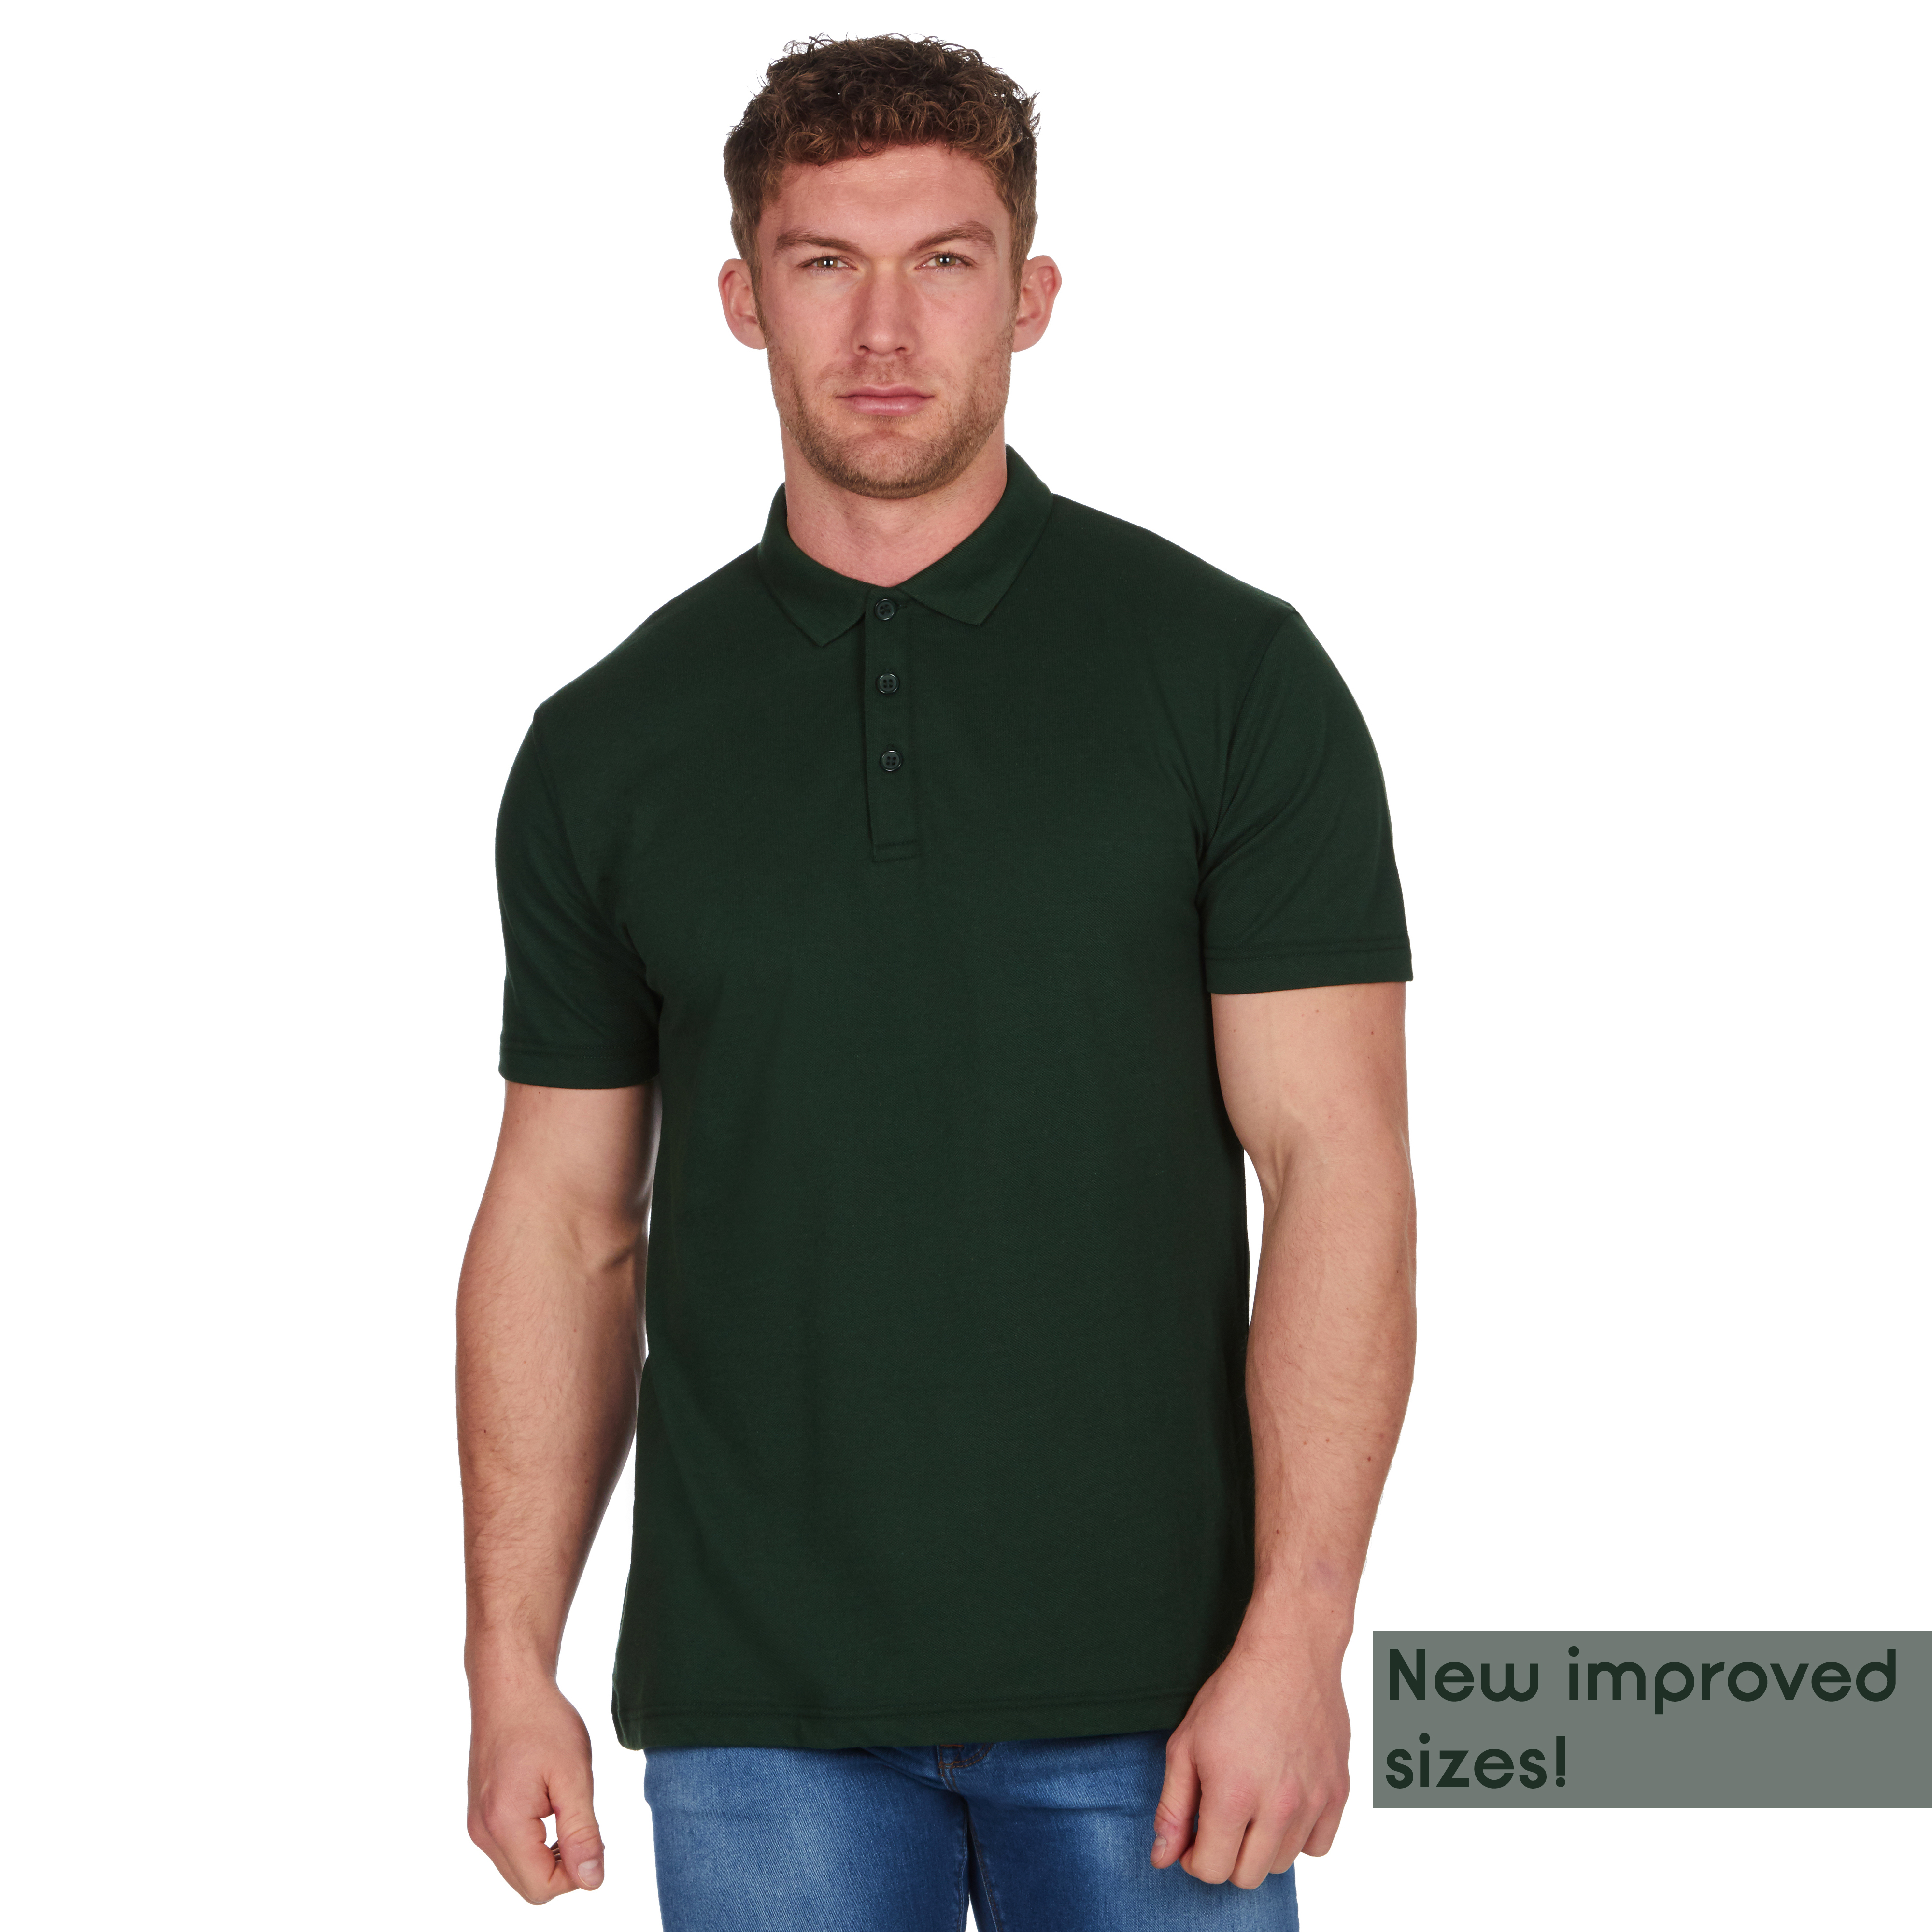 Mens-Classic-Polo-Top-Plus-Size-T-Shirt-Plain-Shirt-Big-And-Tall-Short-Sleeve thumbnail 24